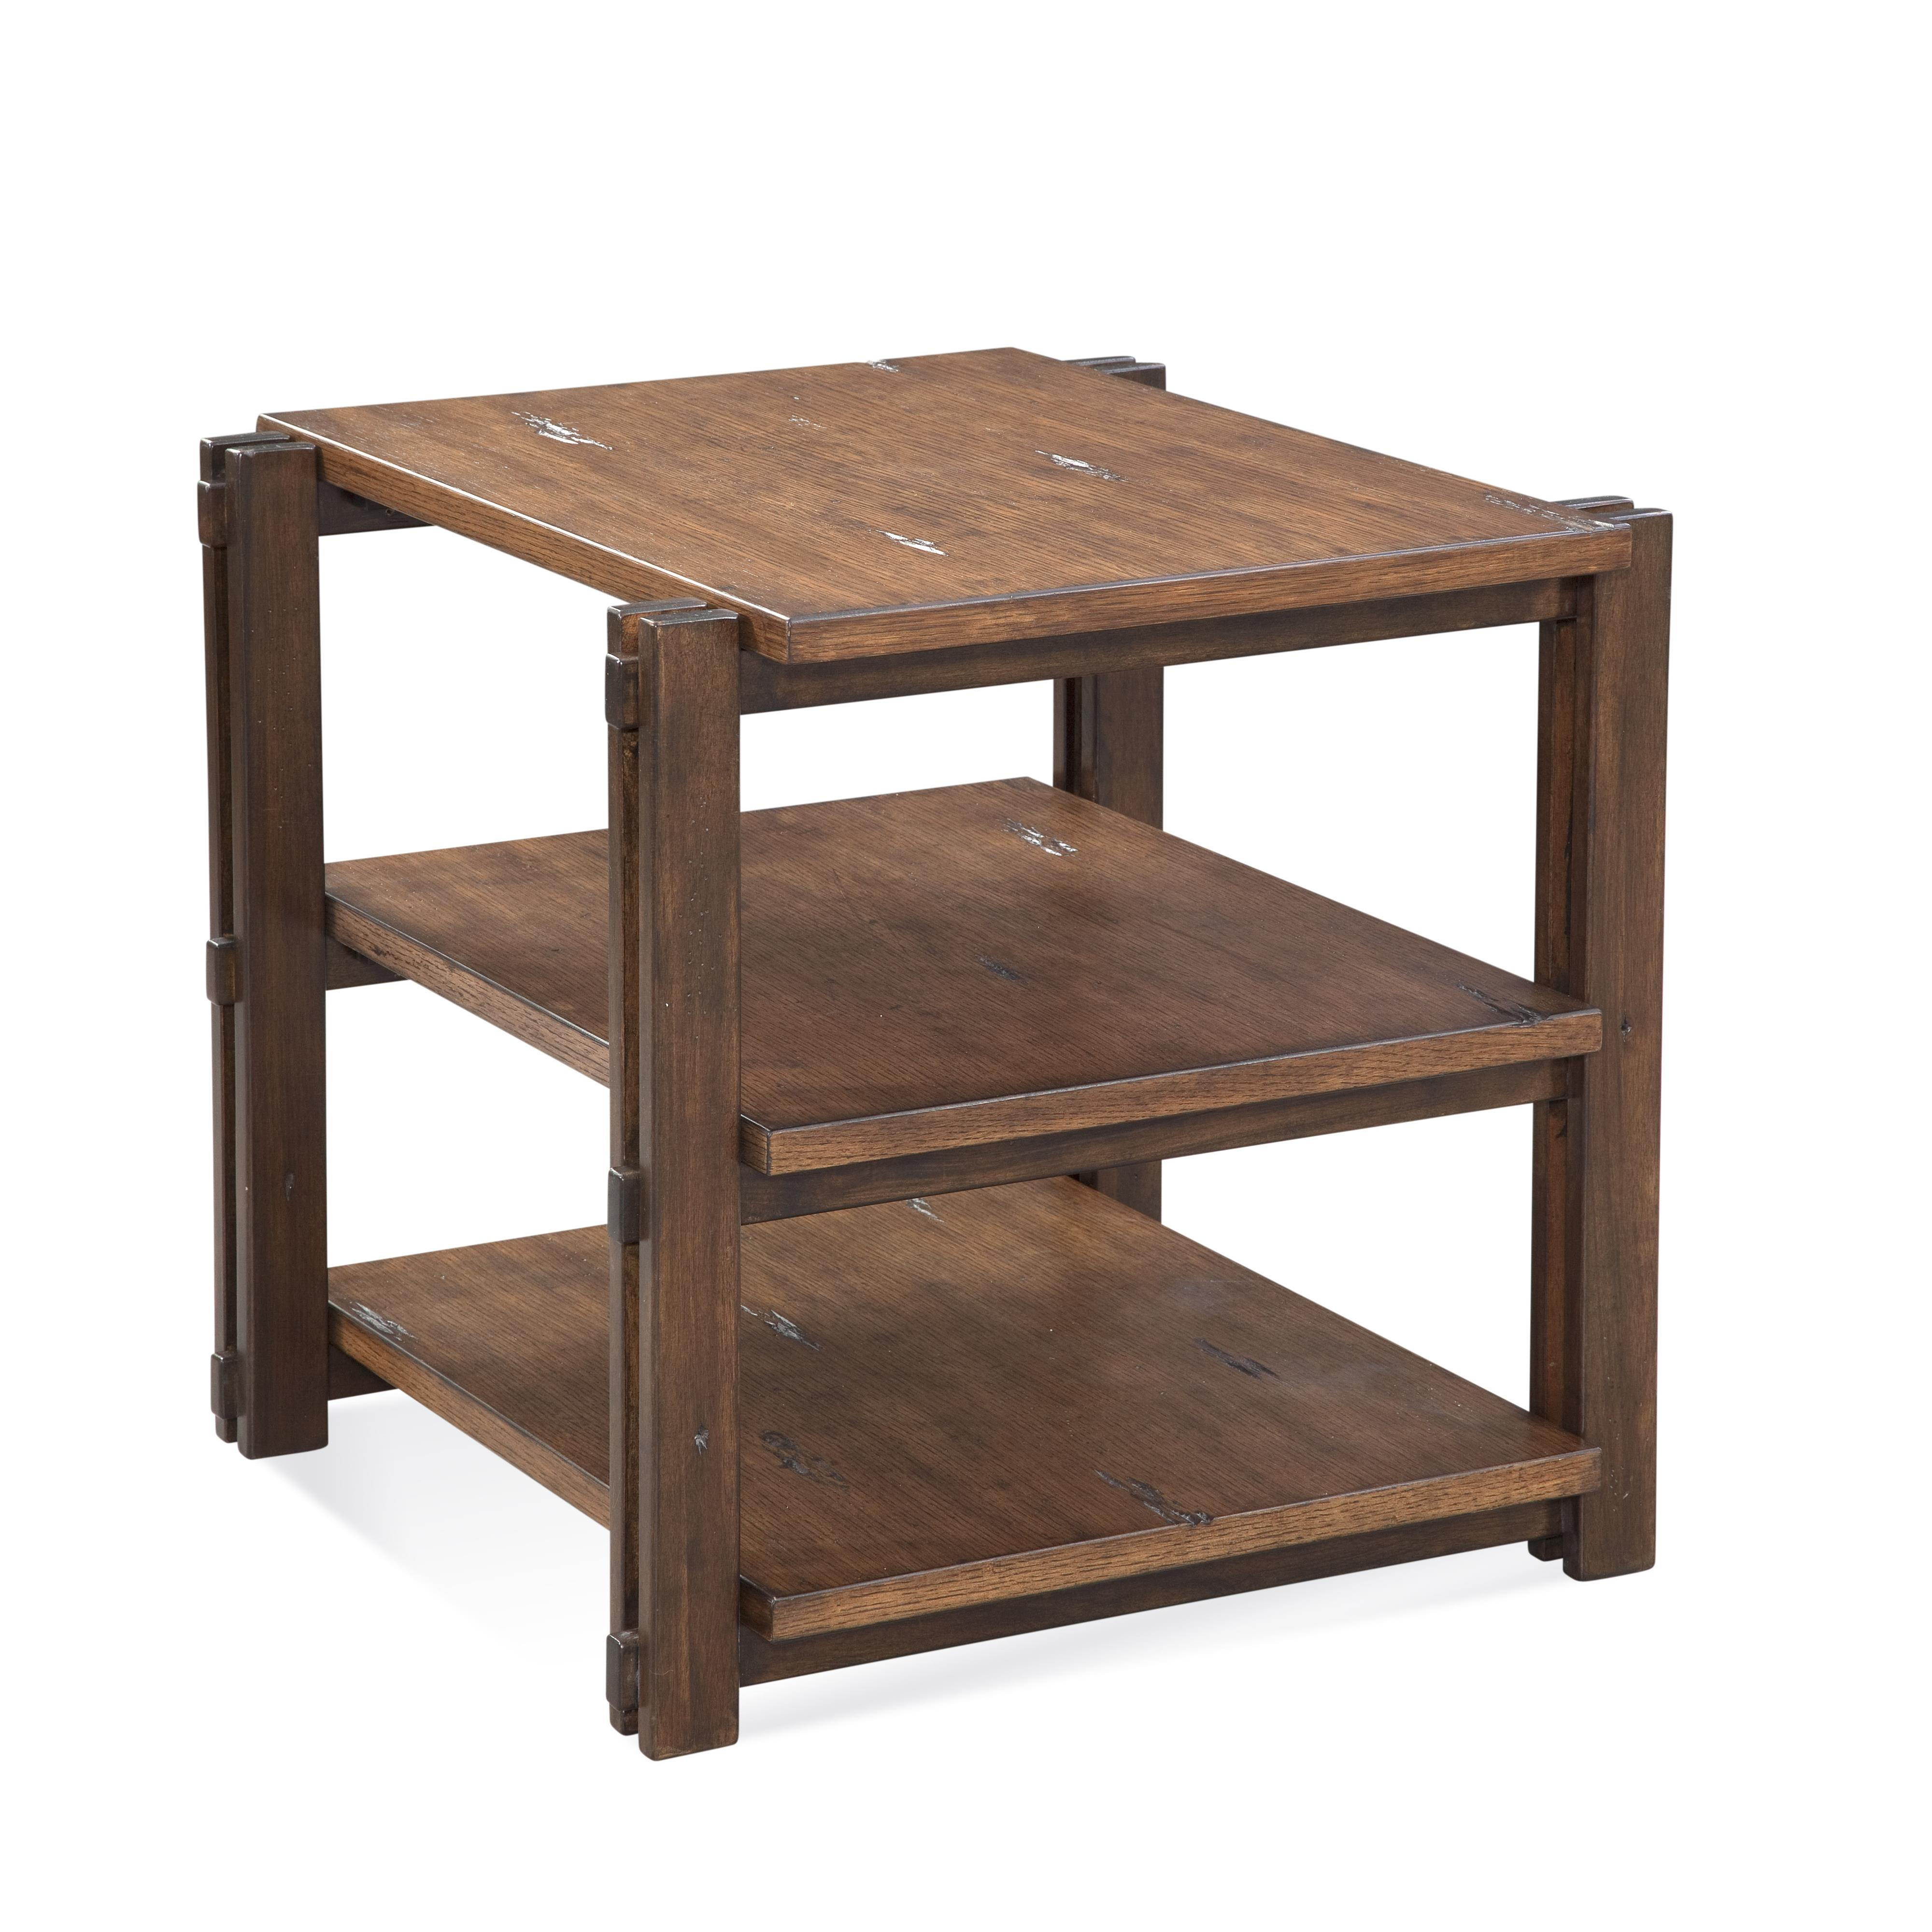 Home Accents Holbrook Rectangle End Table by Bassett Mirror at Alison Craig Home Furnishings